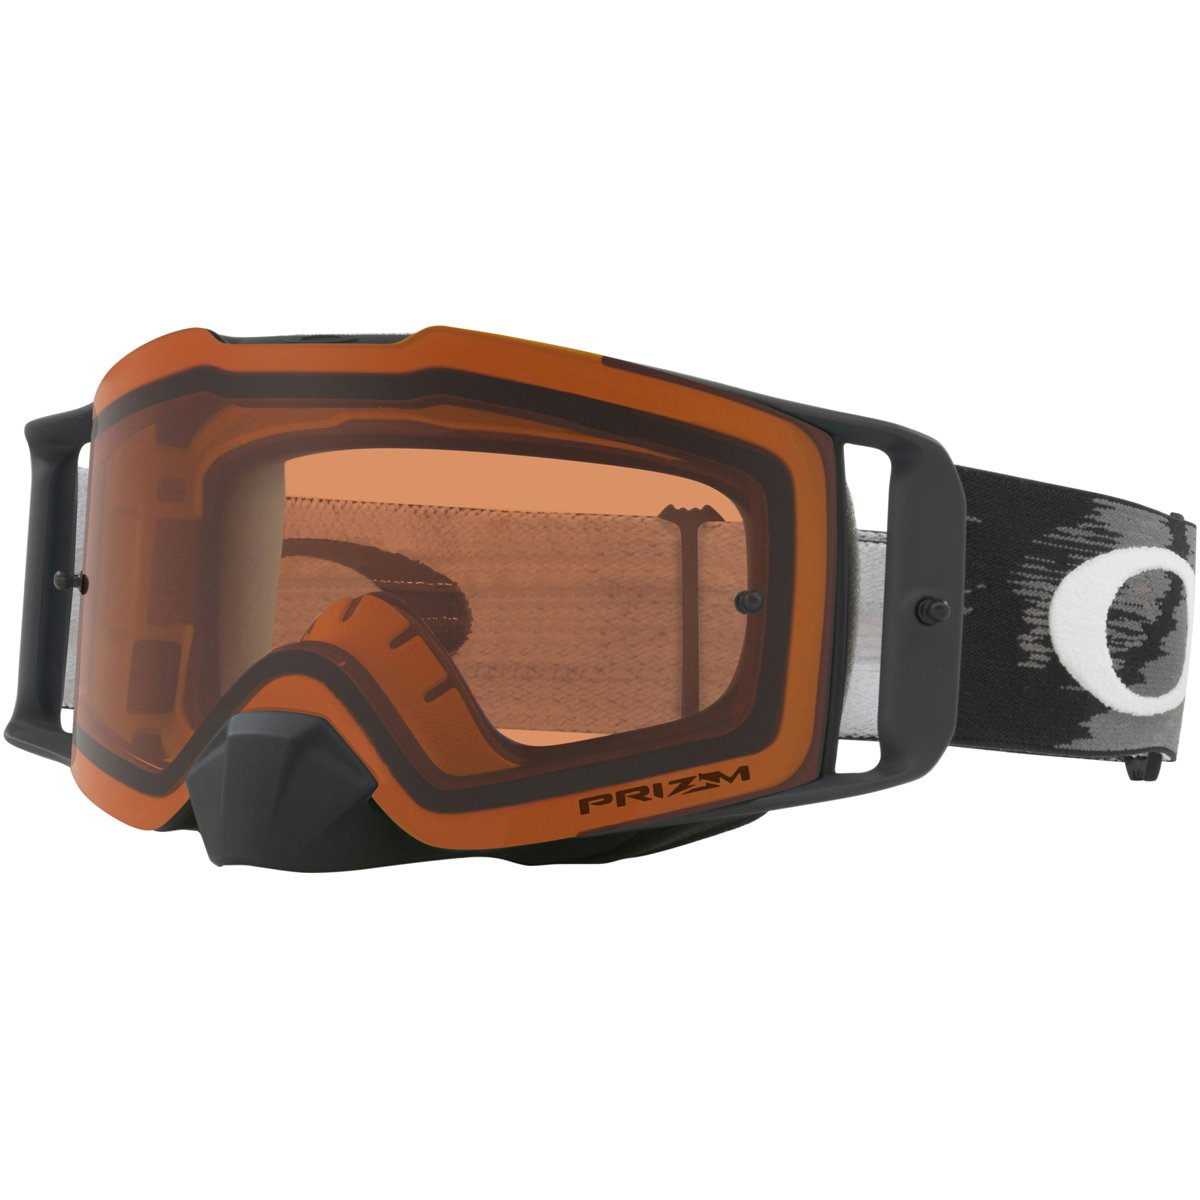 Oakley Front Line MX MatteBlkSpeed with PrzmBronz unisex-adult Goggles (Black, Large), 1 Pack